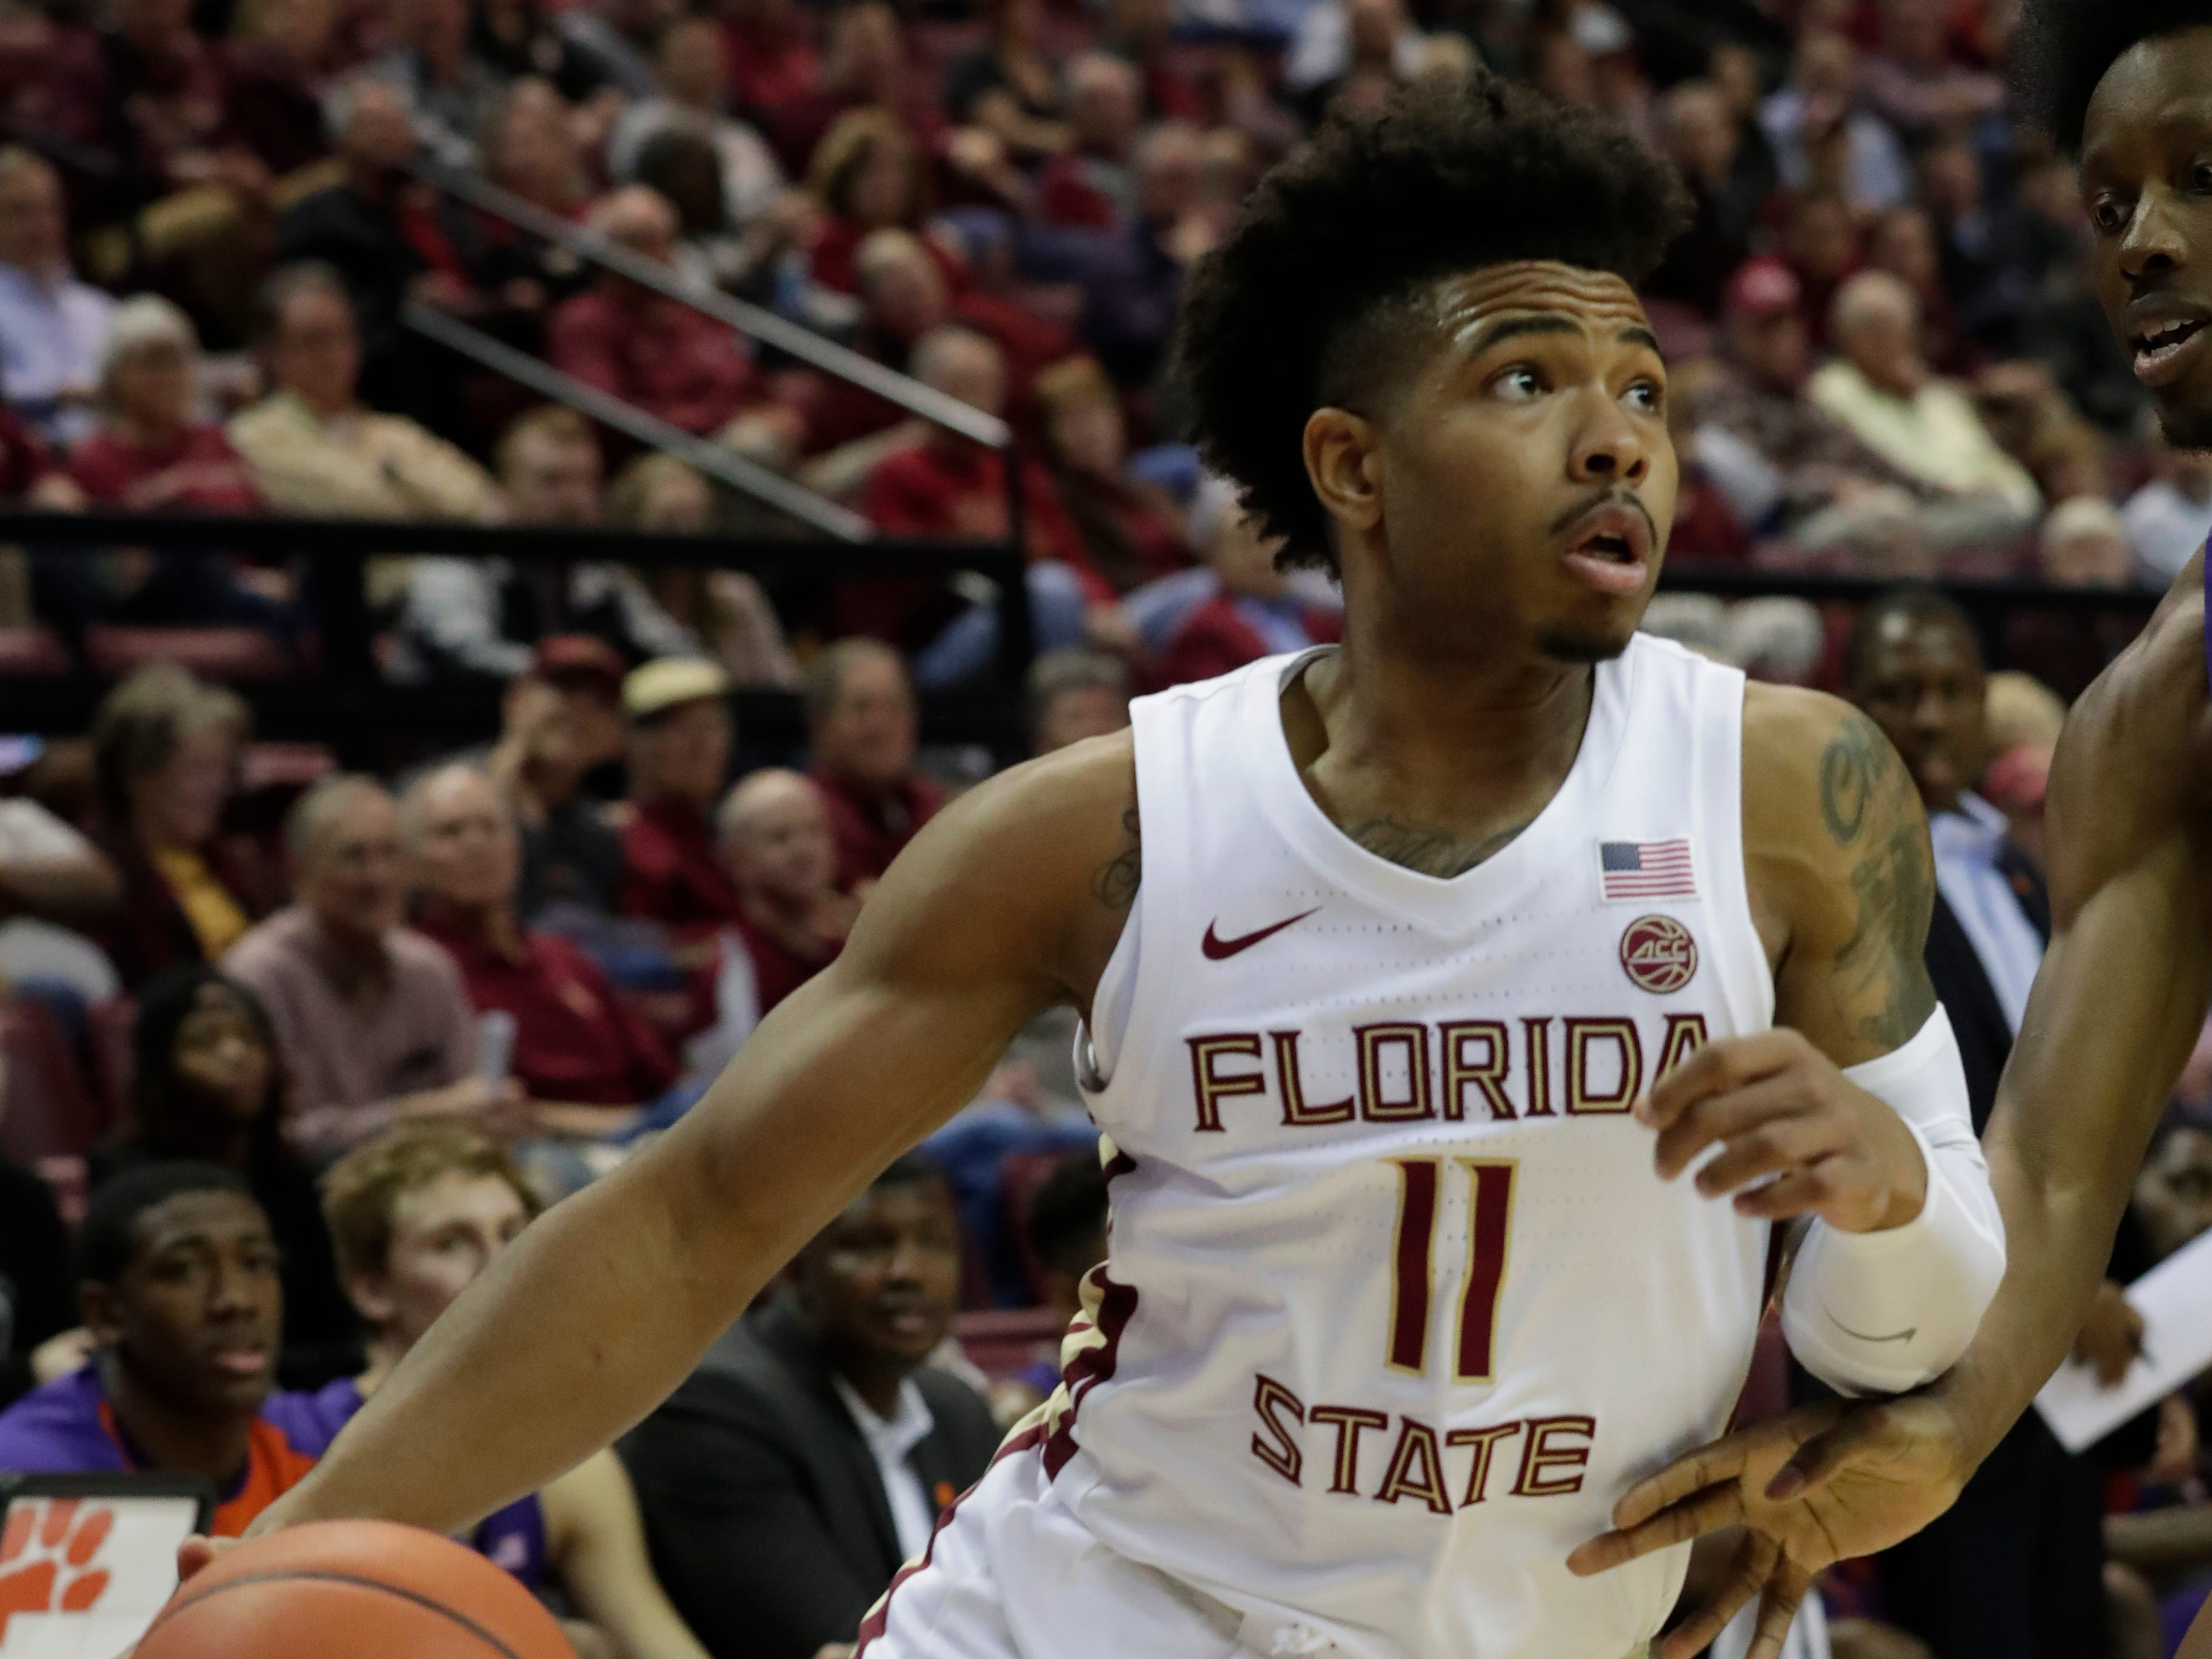 Florida State Seminoles guard David Nichols (11) looks to the hoop for an opportunity to score. The Florida State Seminoles face off against the Clemson Tigers at the Tucker Civic Center, Tuesday, Jan. 22, 2019.